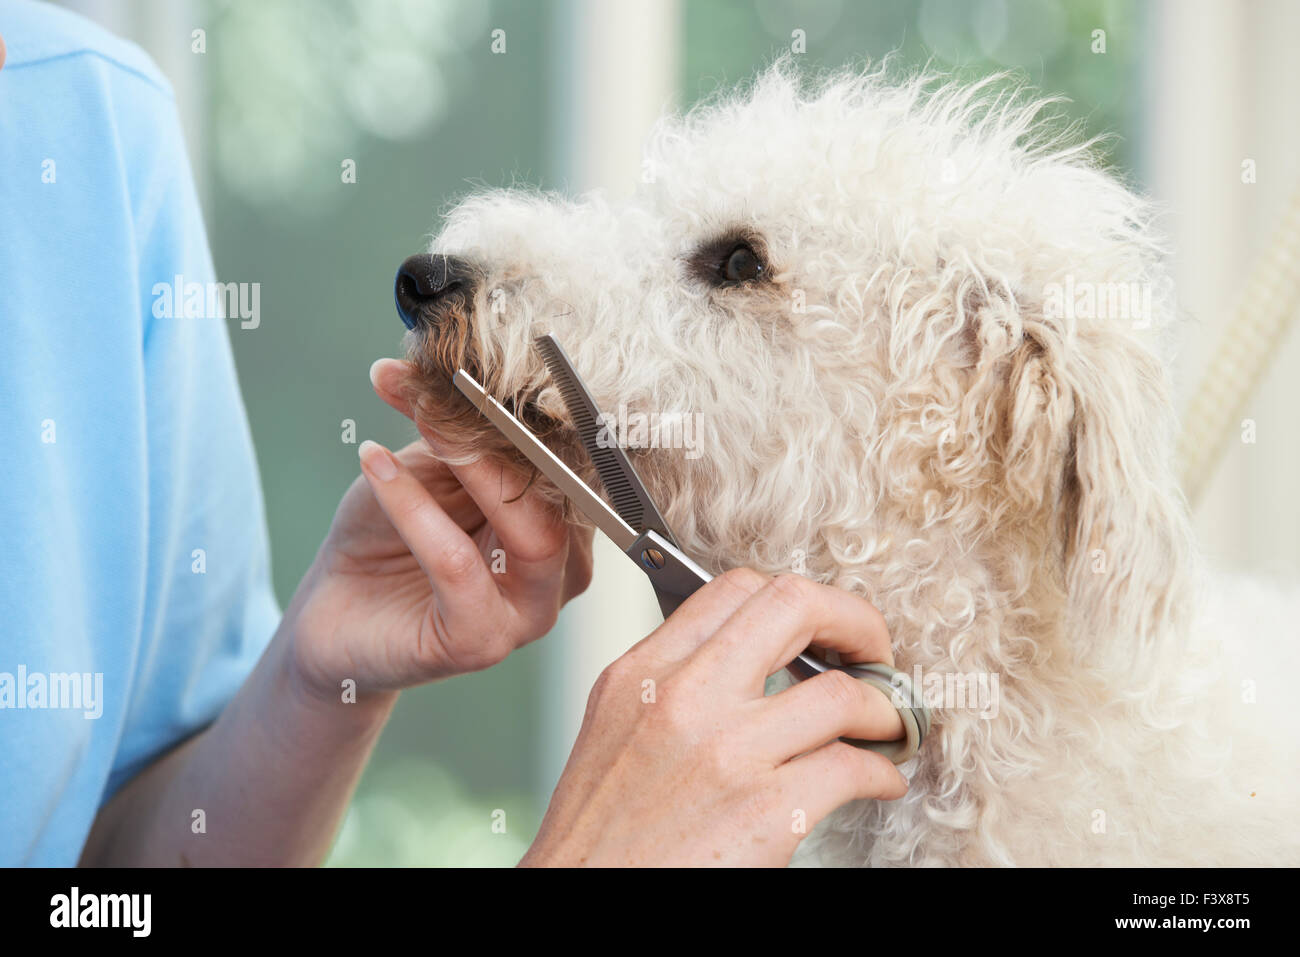 Pet Dog Being Professionally Groomed In Salon - Stock Image